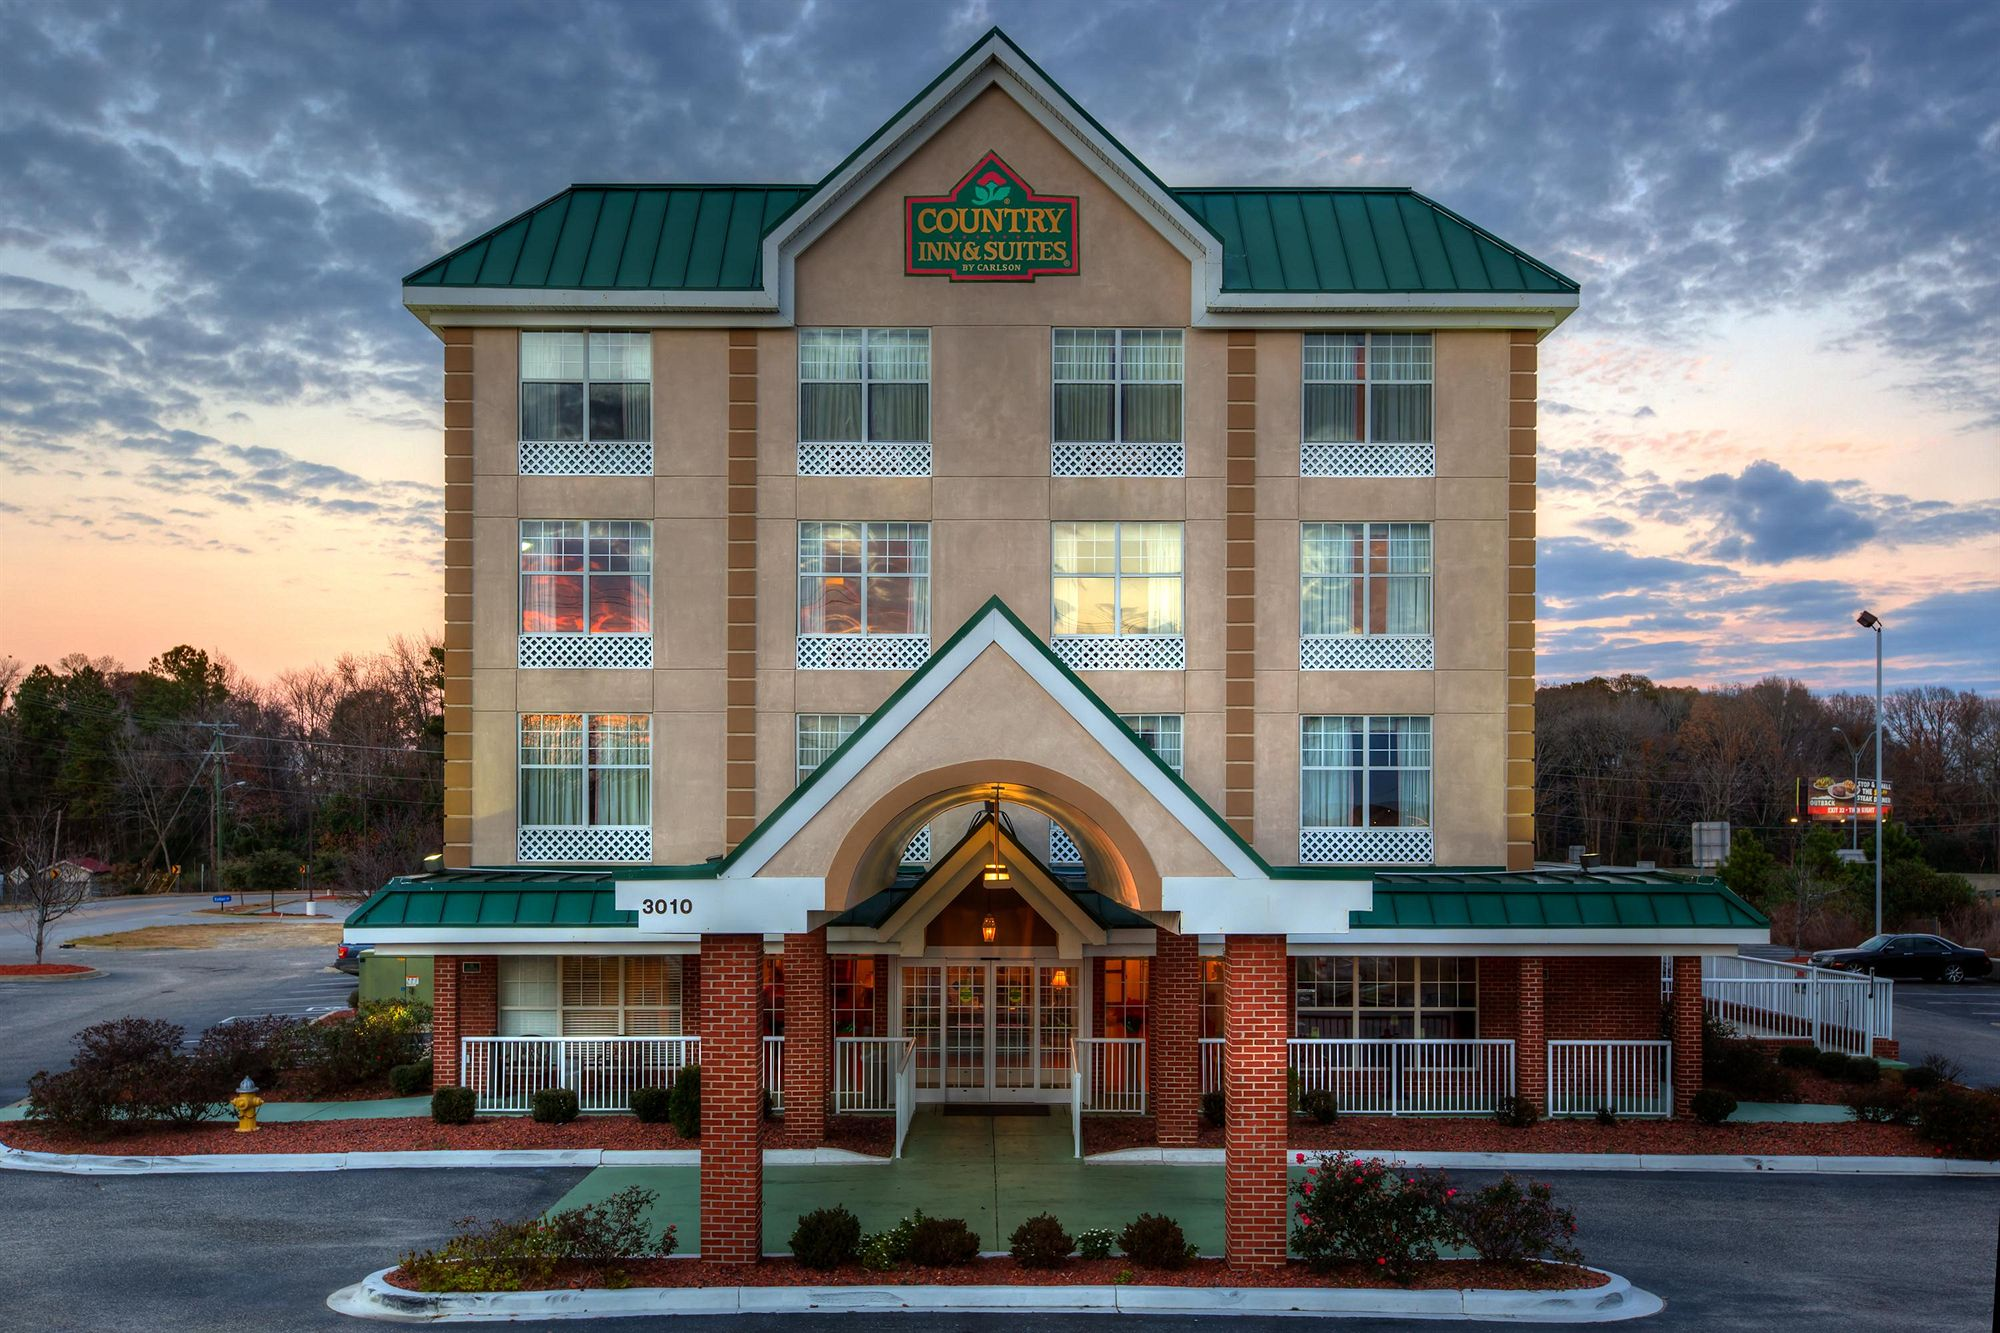 Country Inn & Suites in Lumberton, NC